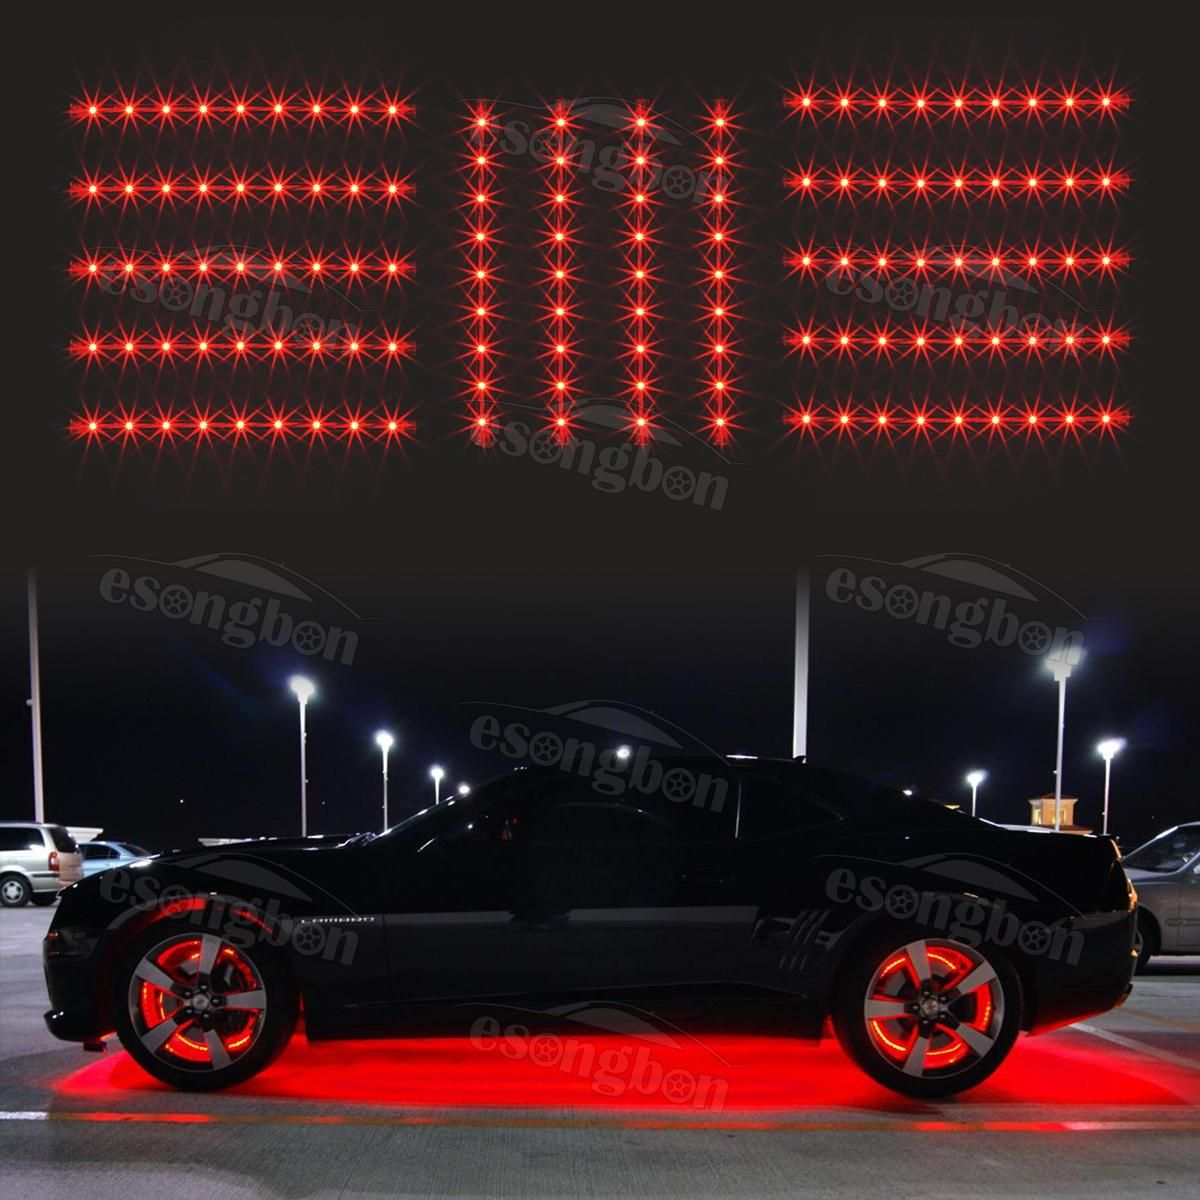 Pin By Vinqueze Nance On Led Light Kits Jeep Lights Red